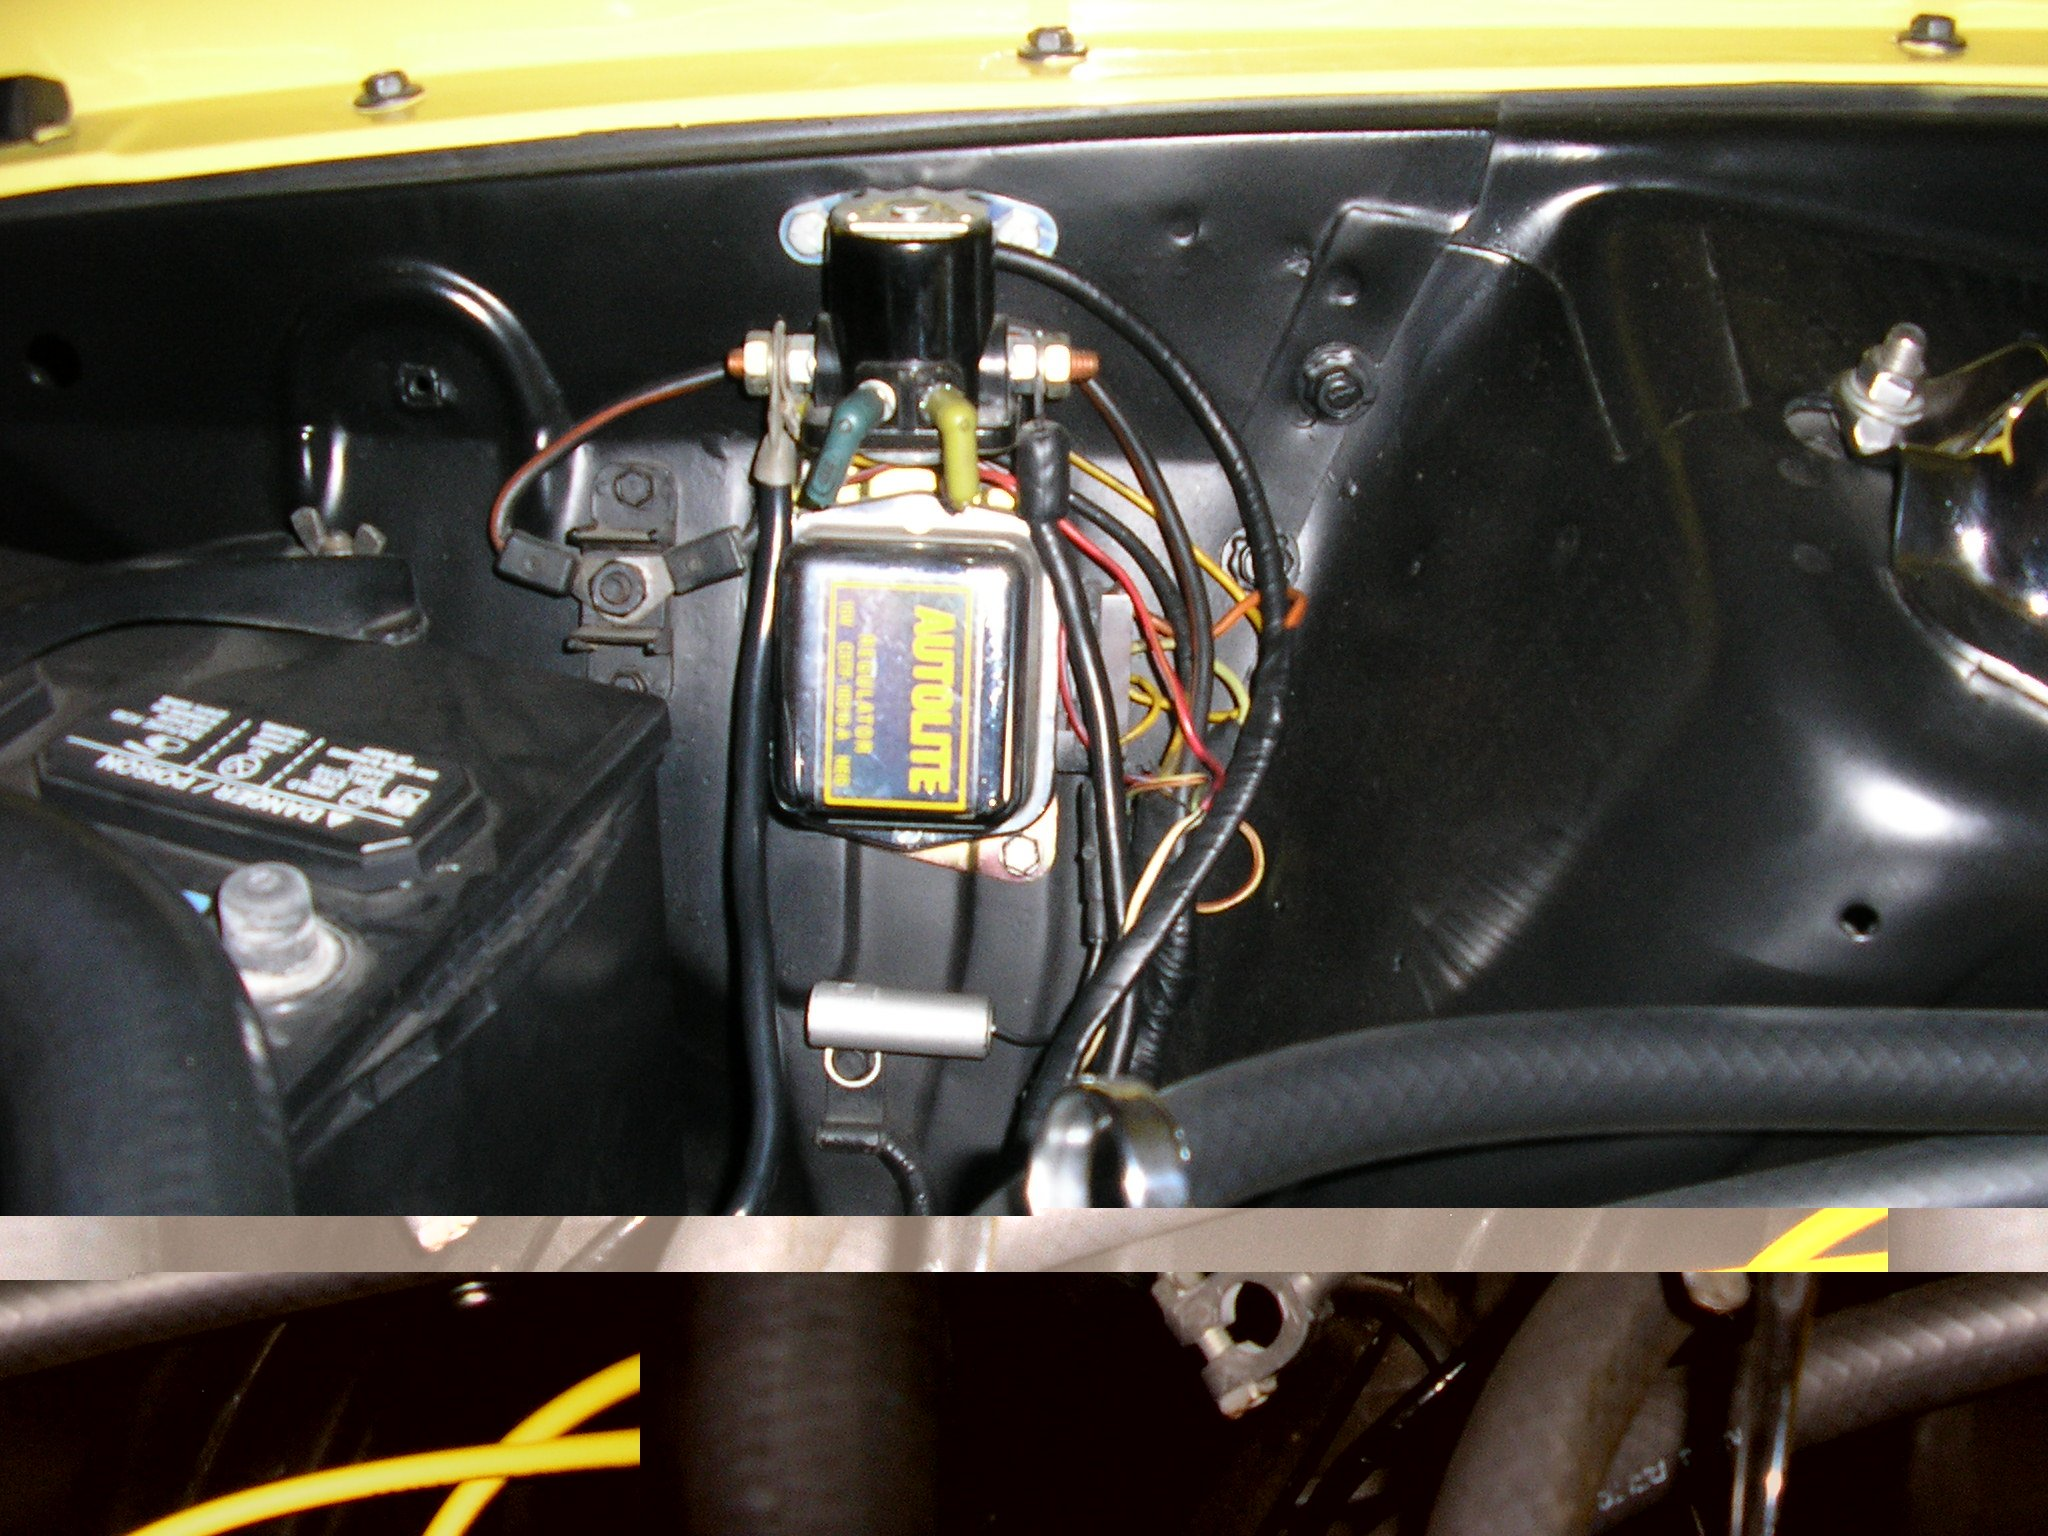 1974 Jeep Starter Solenoid Wiring D Library Diagram With Attached 1973 Mustang Mach 1 F100 Charging Starting